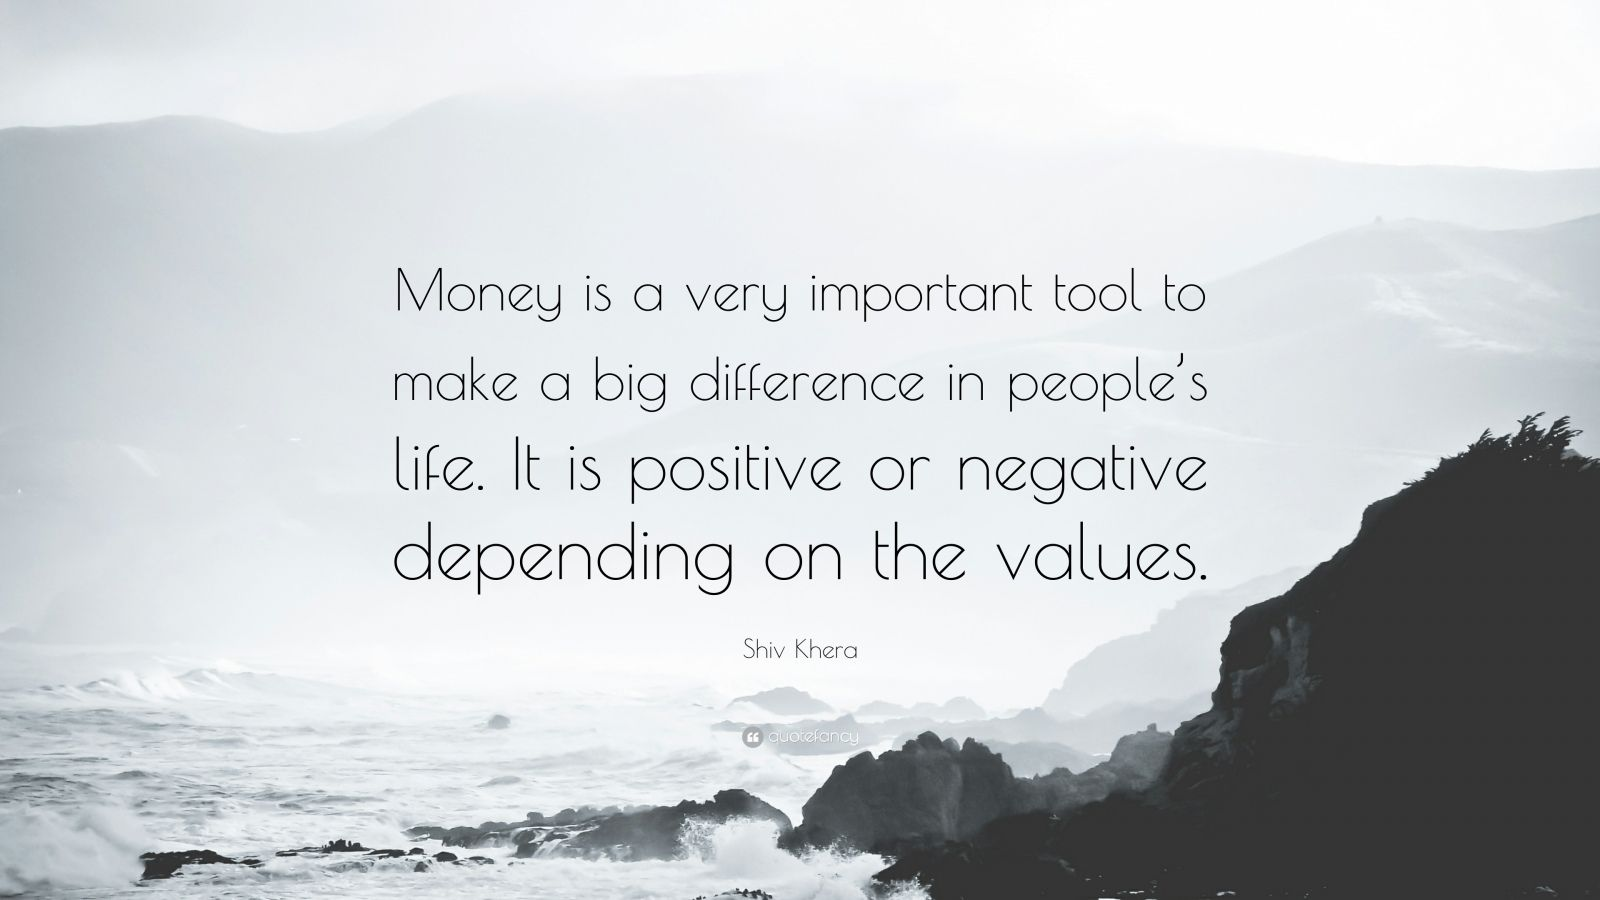 """Shiv Khera Quote: """"Money is a very important tool to make a big difference in people's life. It is positive or negative depending on the values."""""""